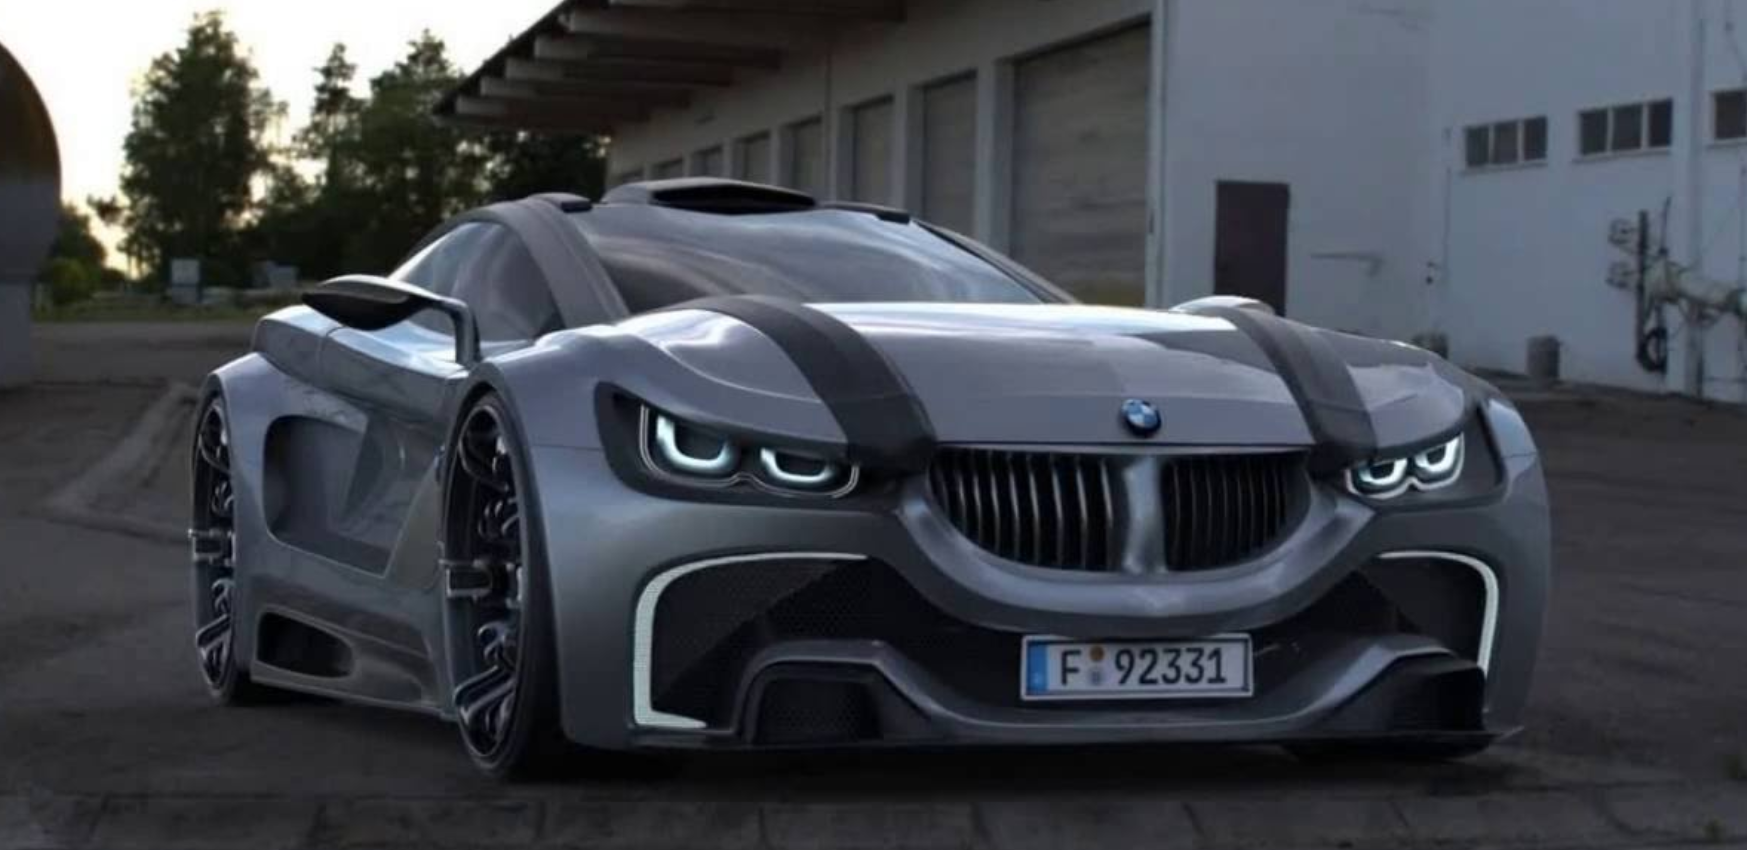 2020 Bmw M9 Concept Price Release Date Bmw Is Famous For